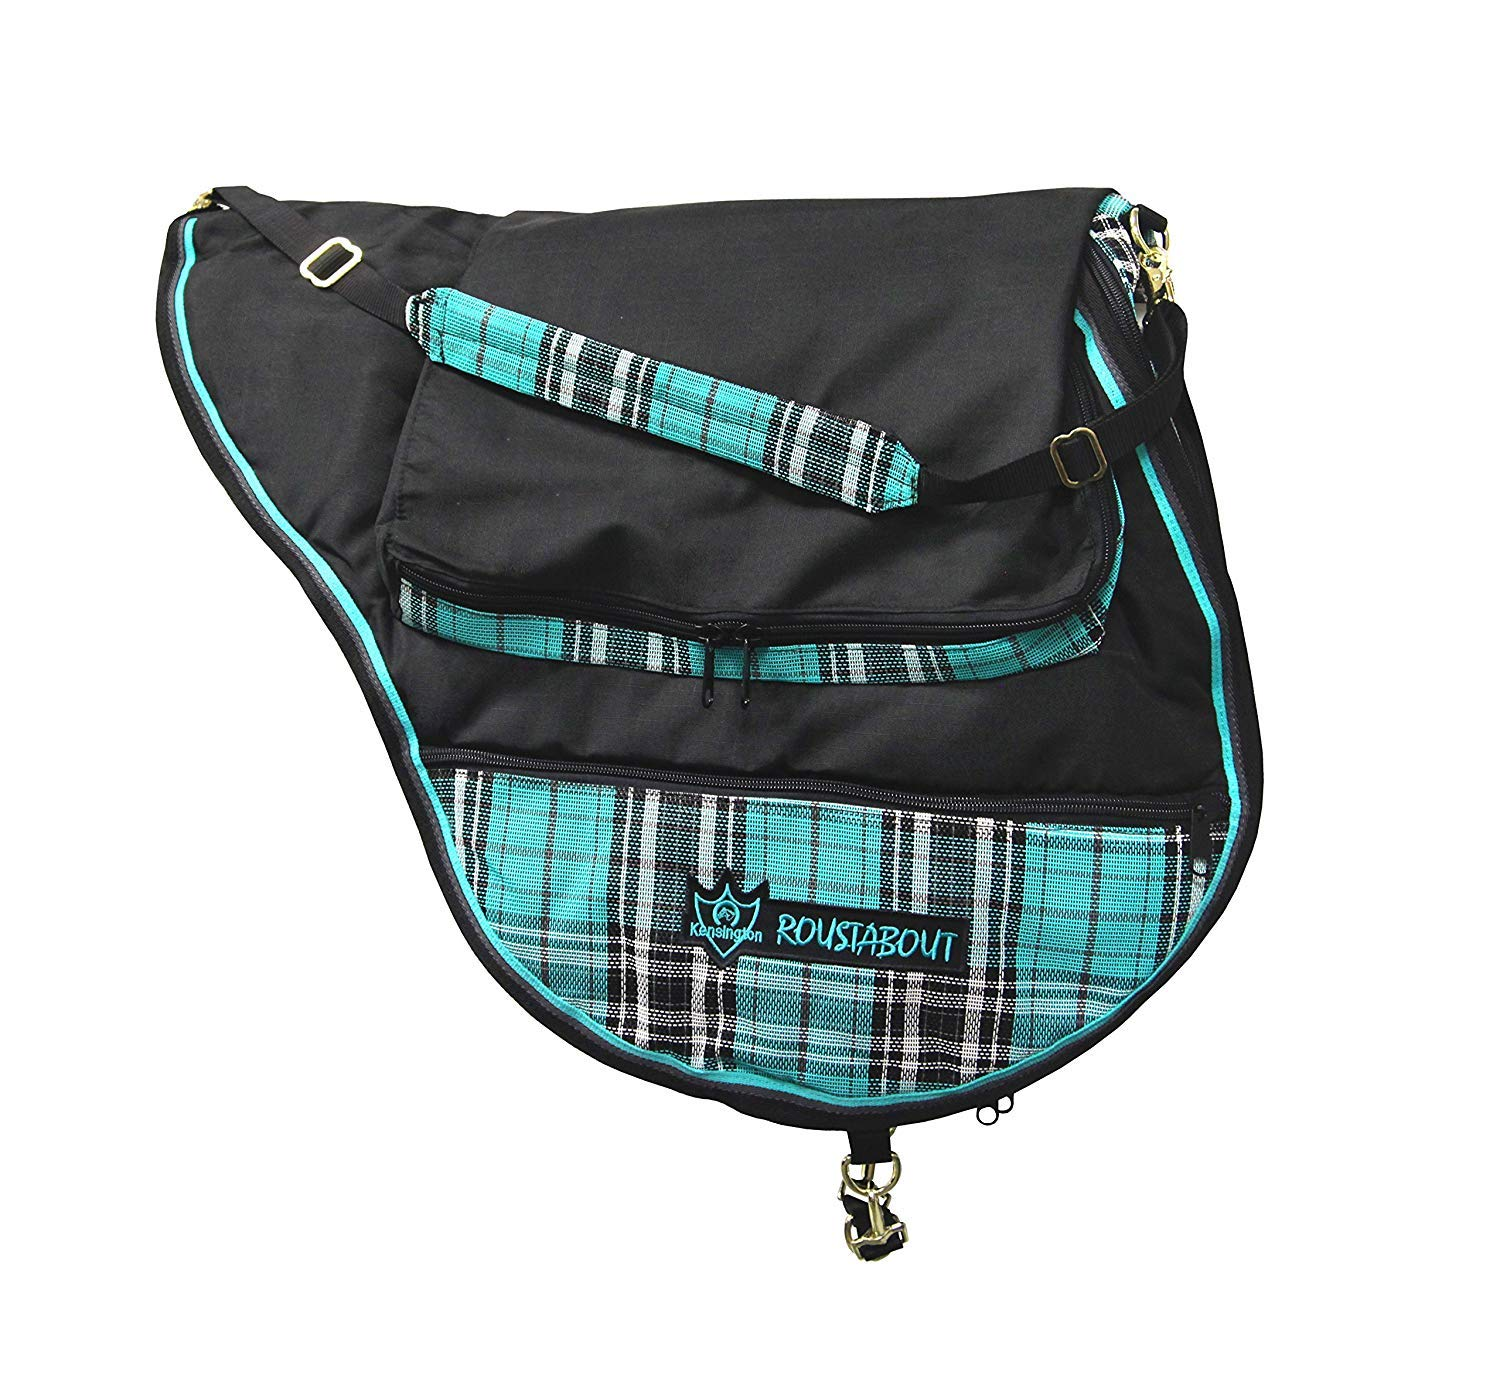 Kensington All Purpose Saddle Carrying Bag - Waterproof Outer Shell - Features Top Pad Storage Compartment - Padded Shoulder Pad for Carrying Comfort by Kensington